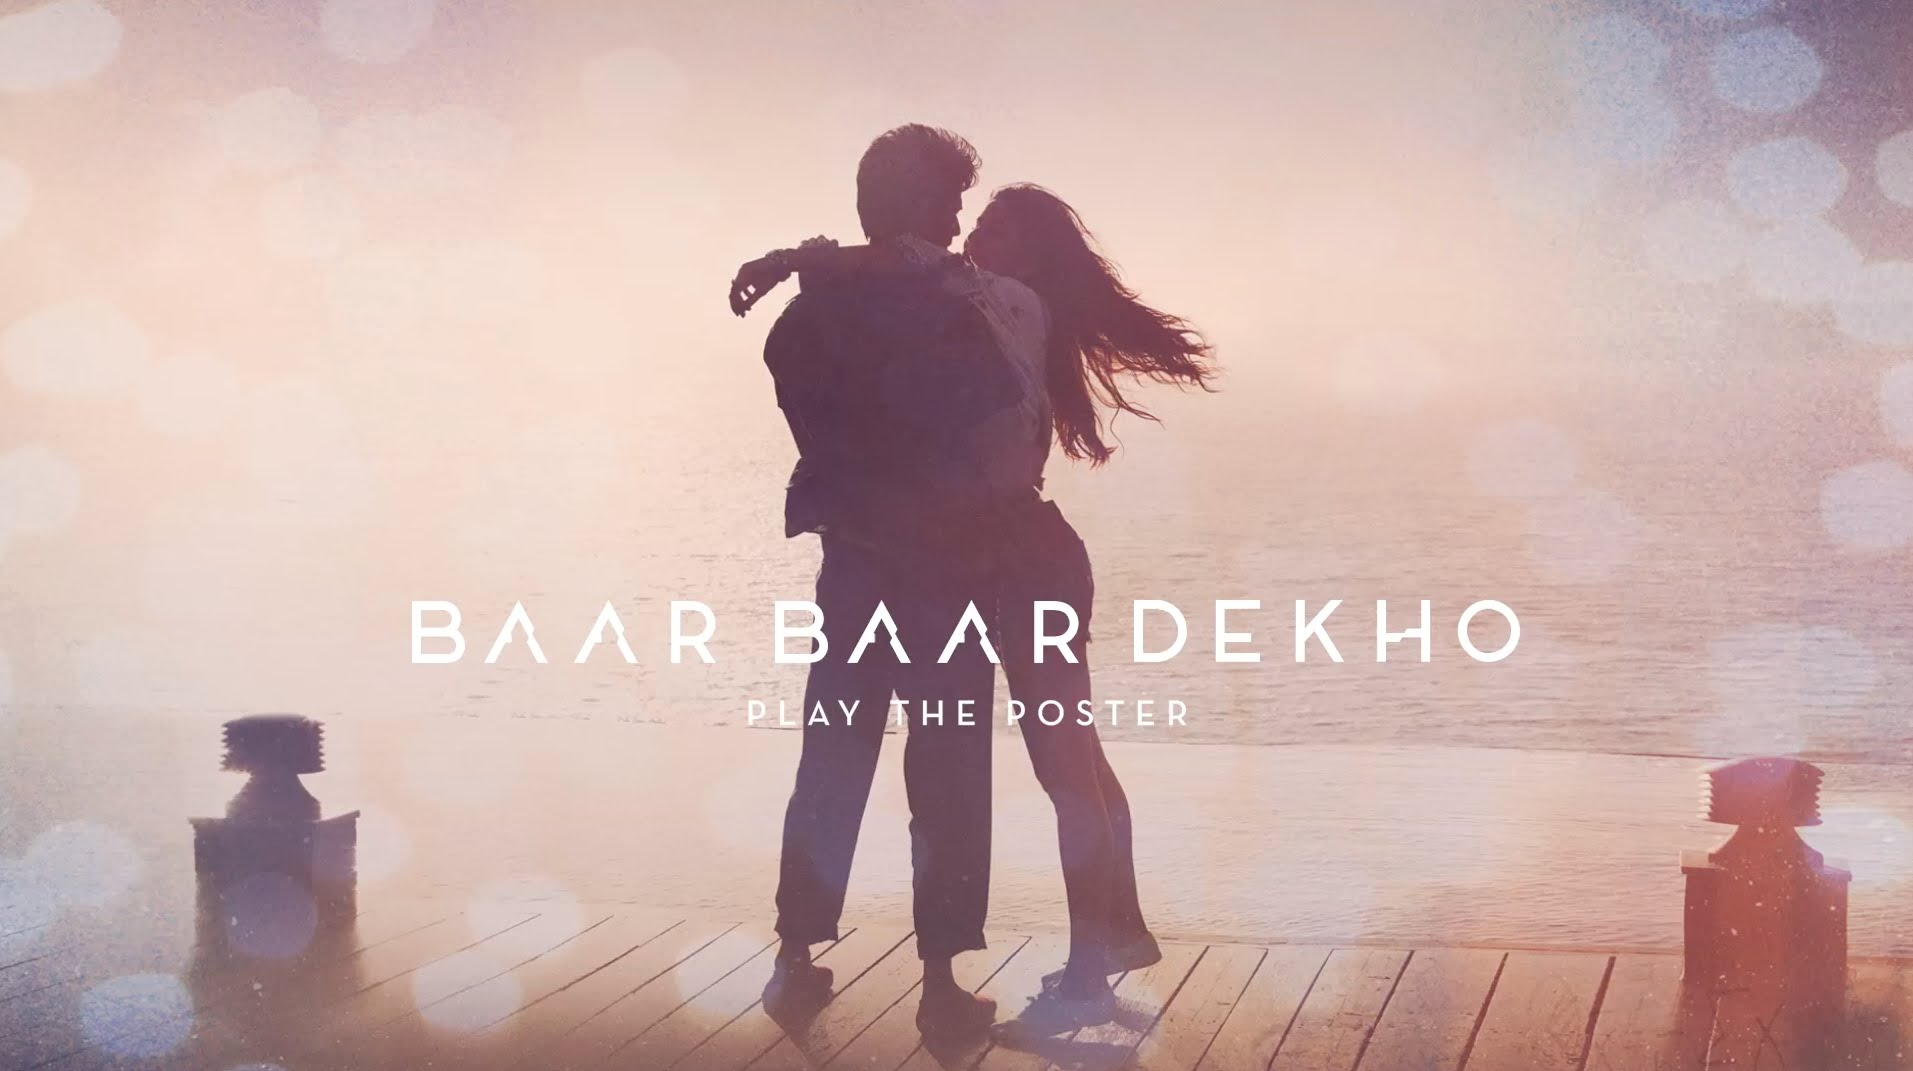 Baar Baar Dekho Motion Poster is quite interesting, trailer will be out tomorrow